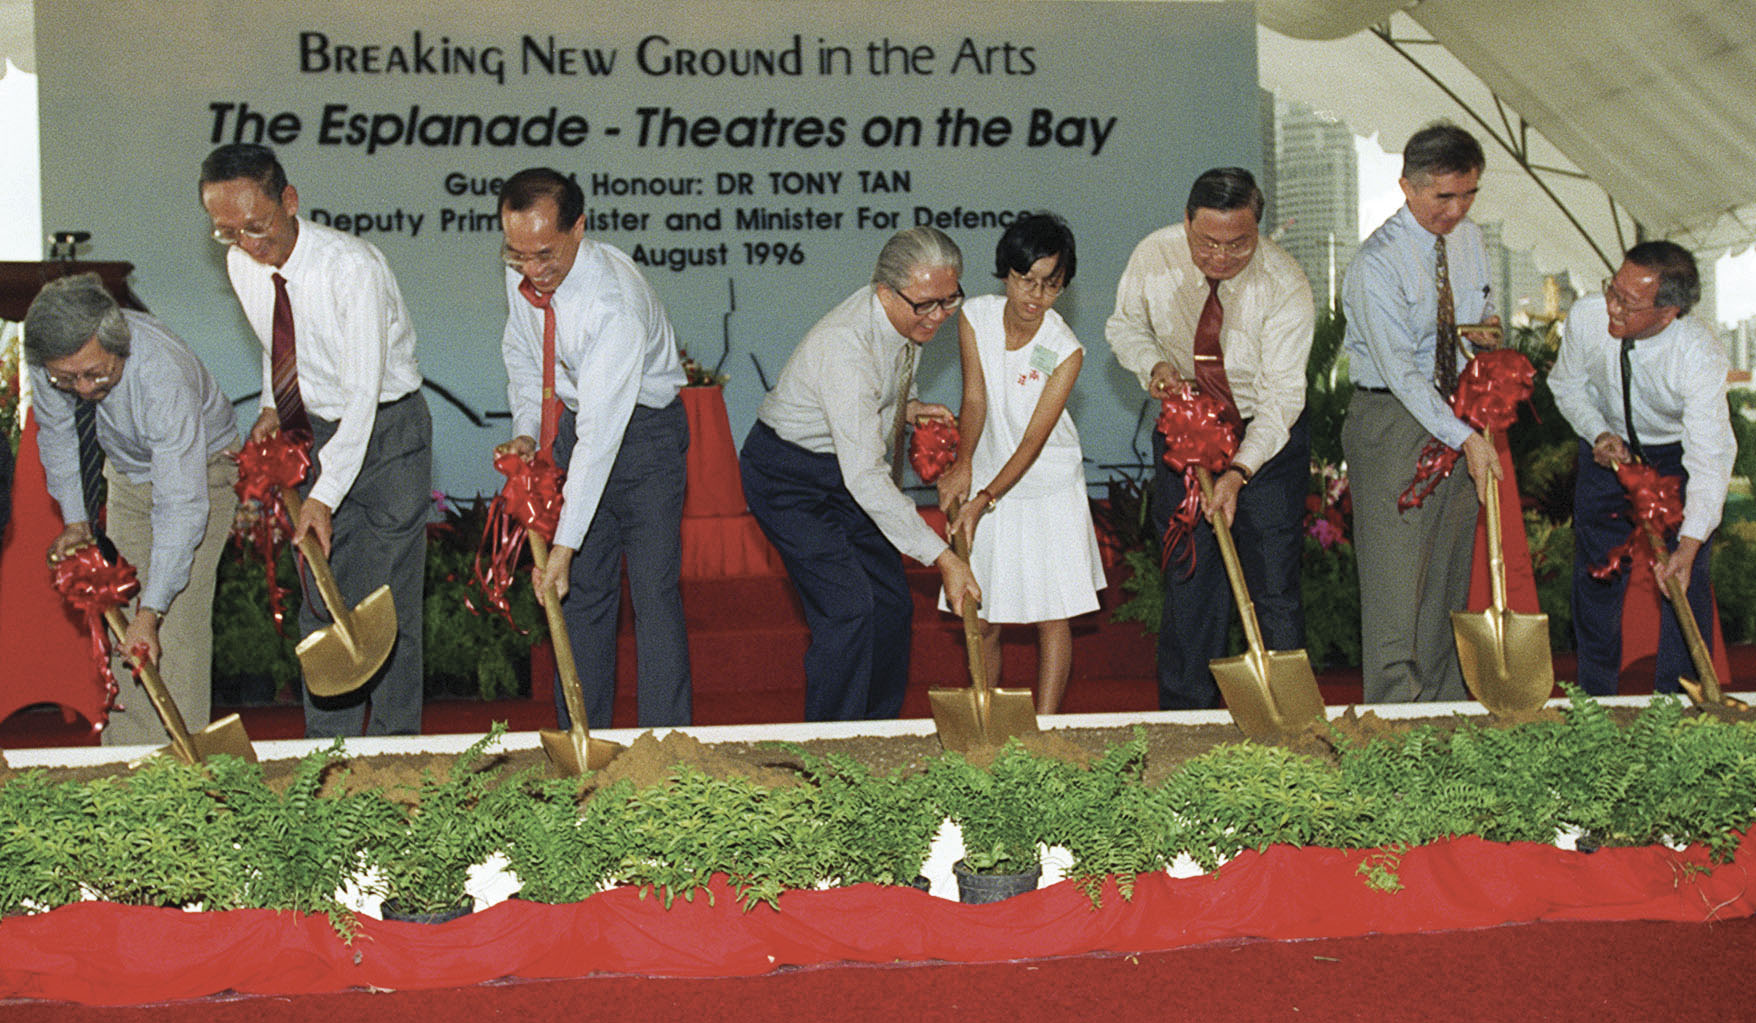 Esplanade's Groundbreaking Ceremony on 11 August 1996. (from left: Steering committee members architect Raymond Woo, Tan Swan Beng of the PUblic Works Department, then Minister for Information and the Arts George Yeo, then Deputy Prime Minister Tony Tan helped by Nanyang High SChool's Ong Ee Sin, then Singapore Arts Centre chairman Robert Iau, then National Arts Council Chairman Liu Thai Ker and DP Architects' Koh Seow Chuan. Photo courtesy: Esplanade - Theatres on the Bay